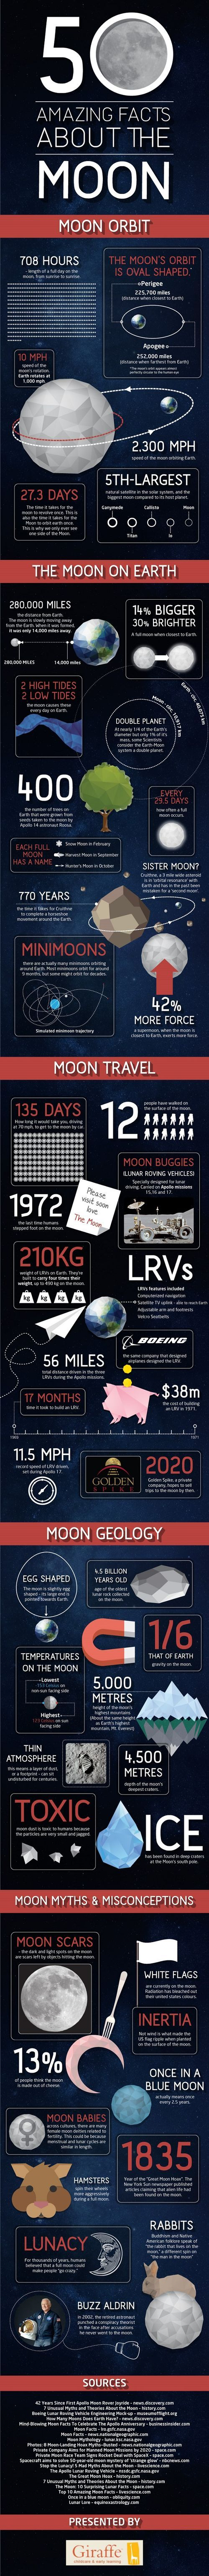 Infographic: 50 Amazing Facts About The Moon ♥ Save for reference.